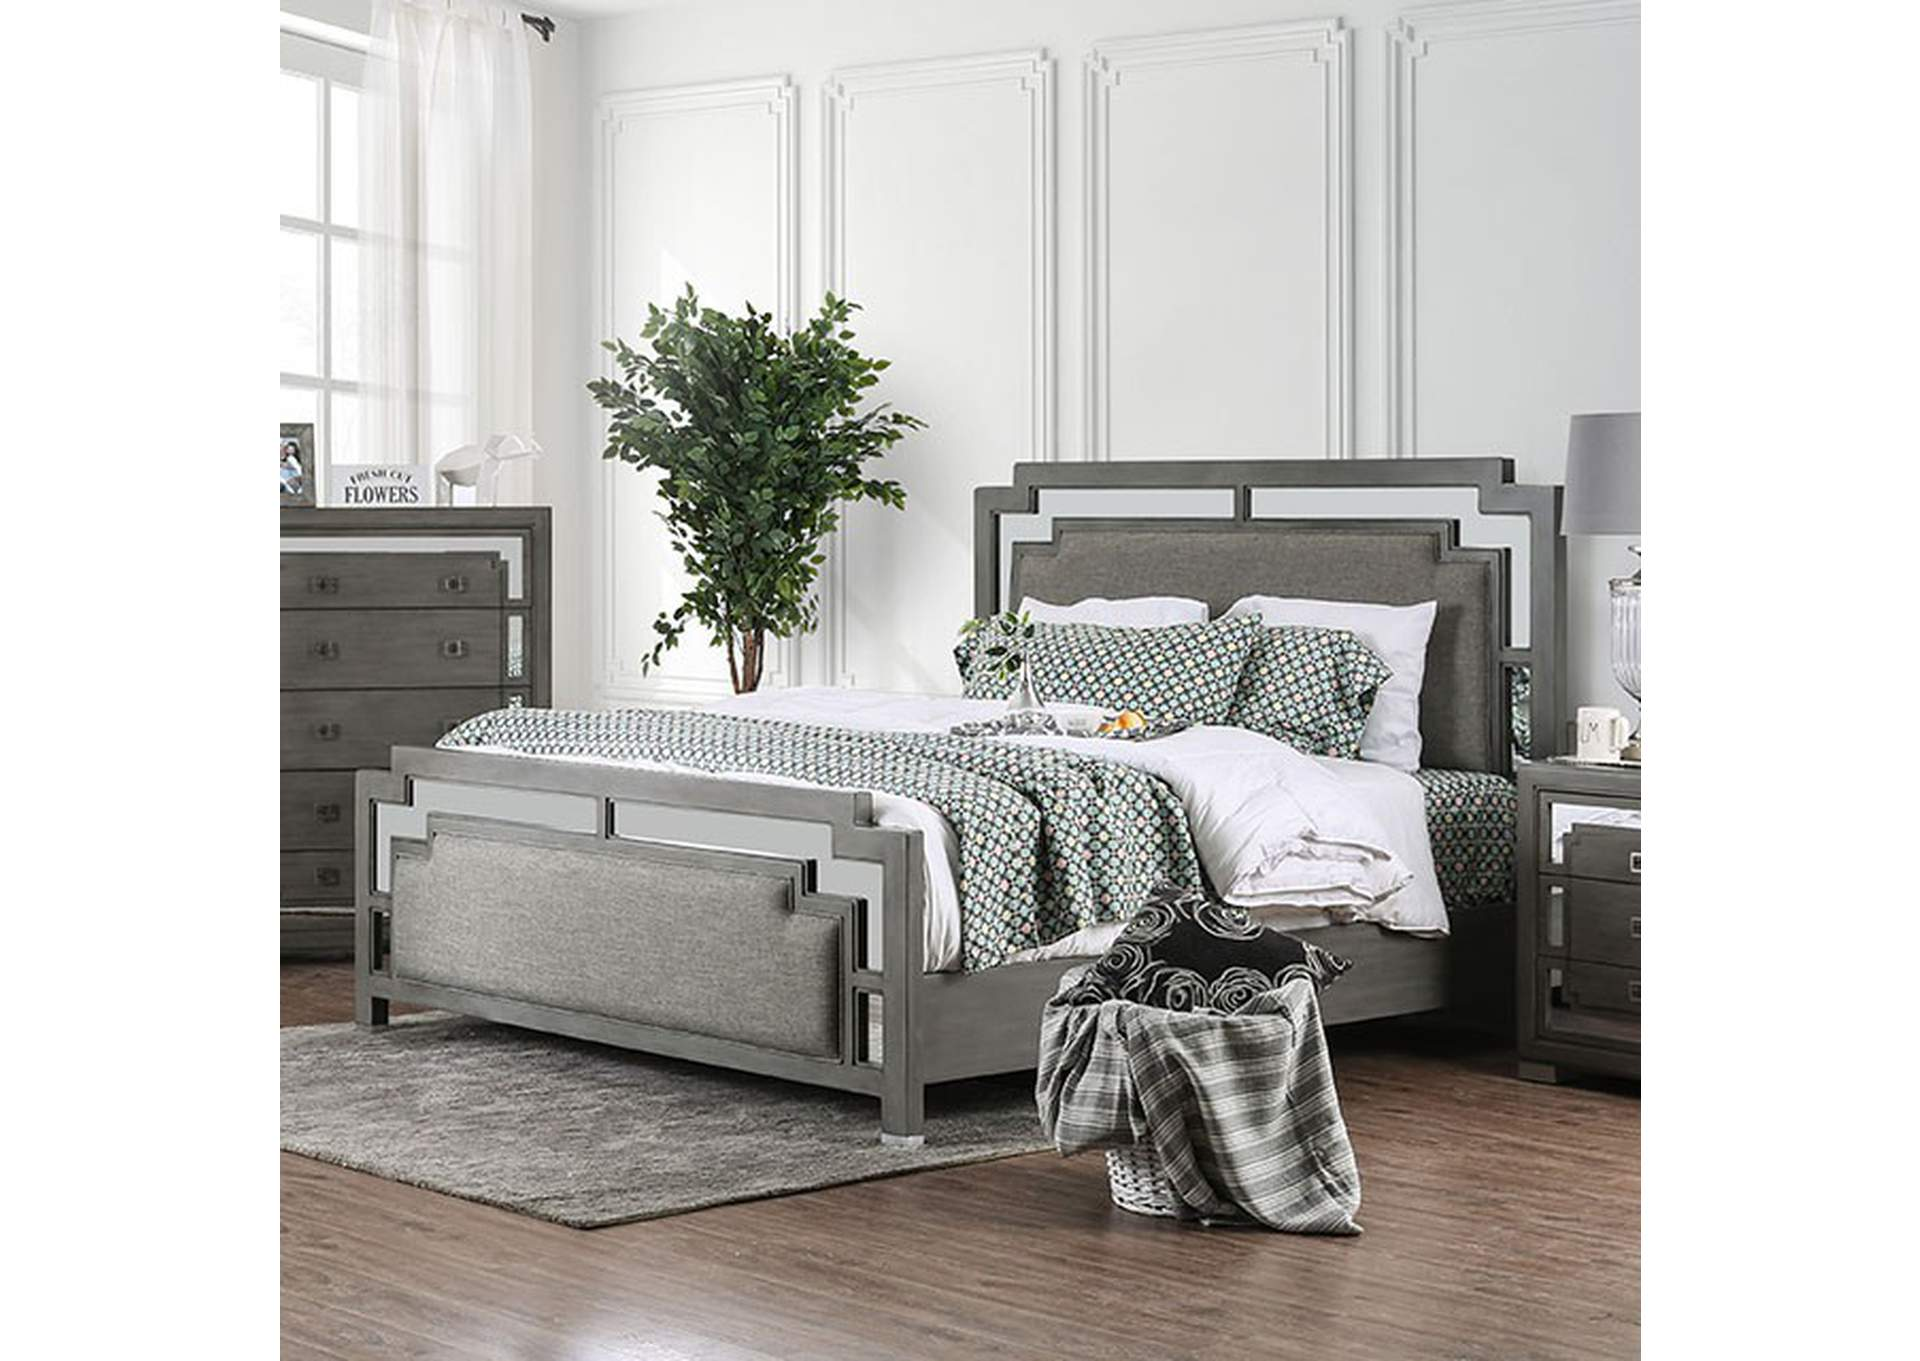 Jeanine Gray California King Bed,Furniture of America